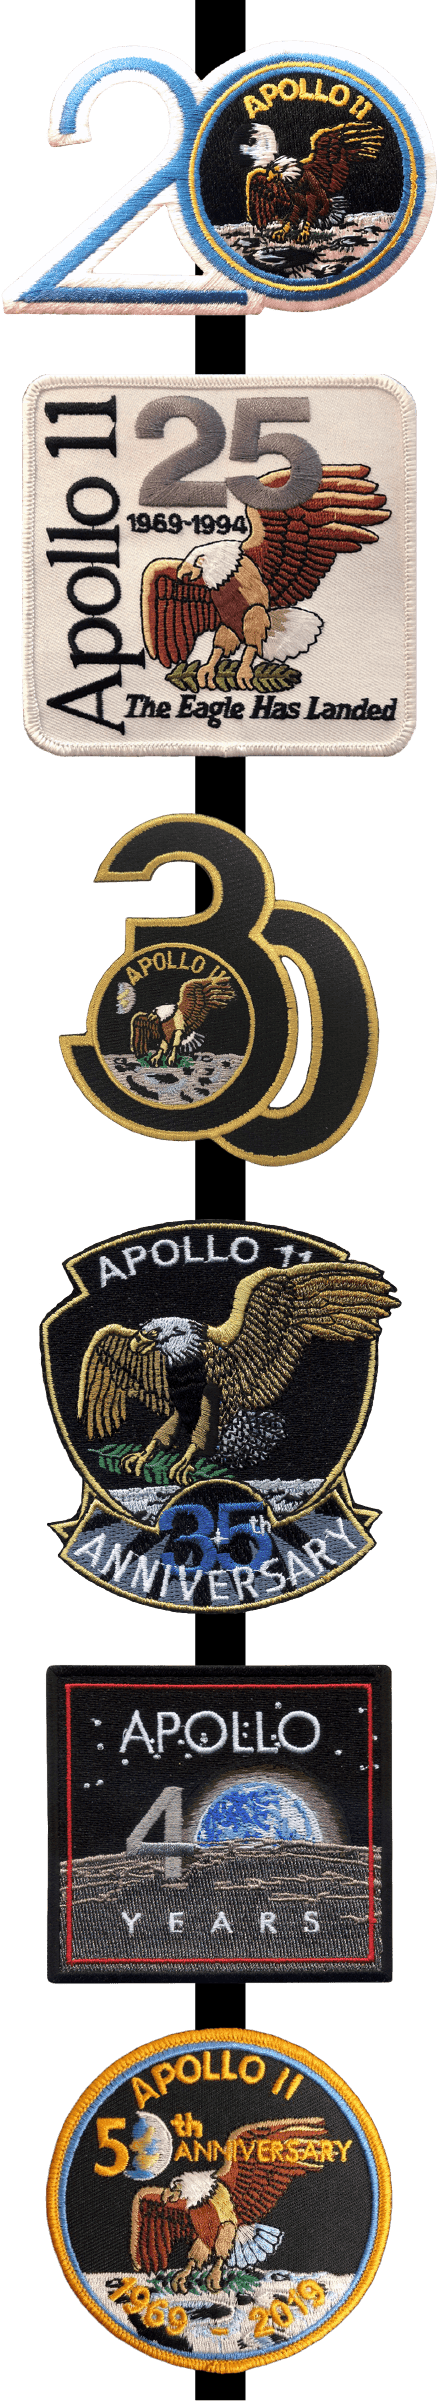 Apollo 11 Anniversary Mission Patch Set - The Space Store